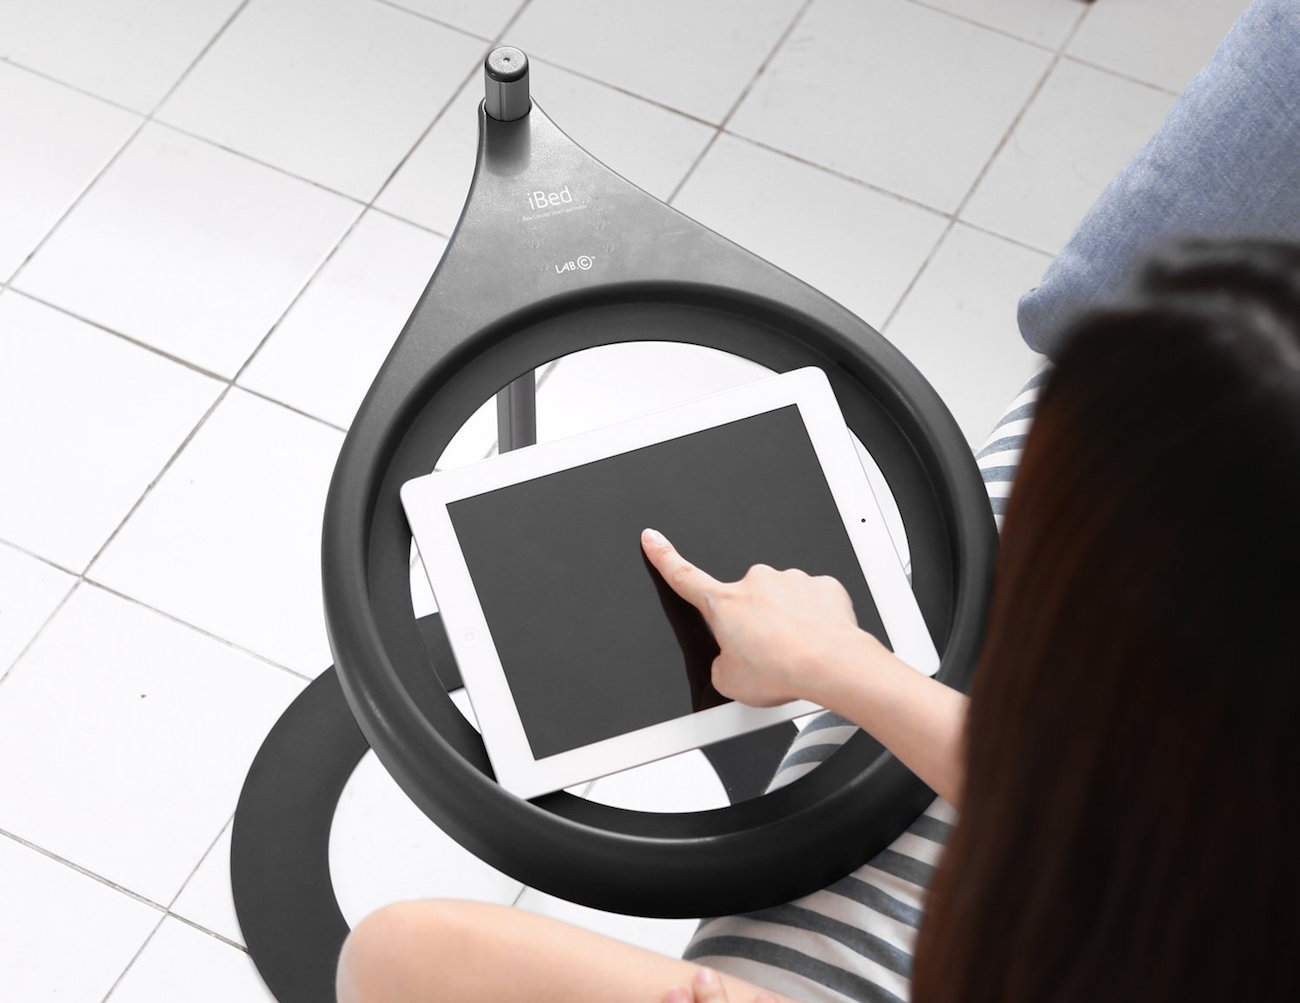 LABC – iBed Tablet Stand